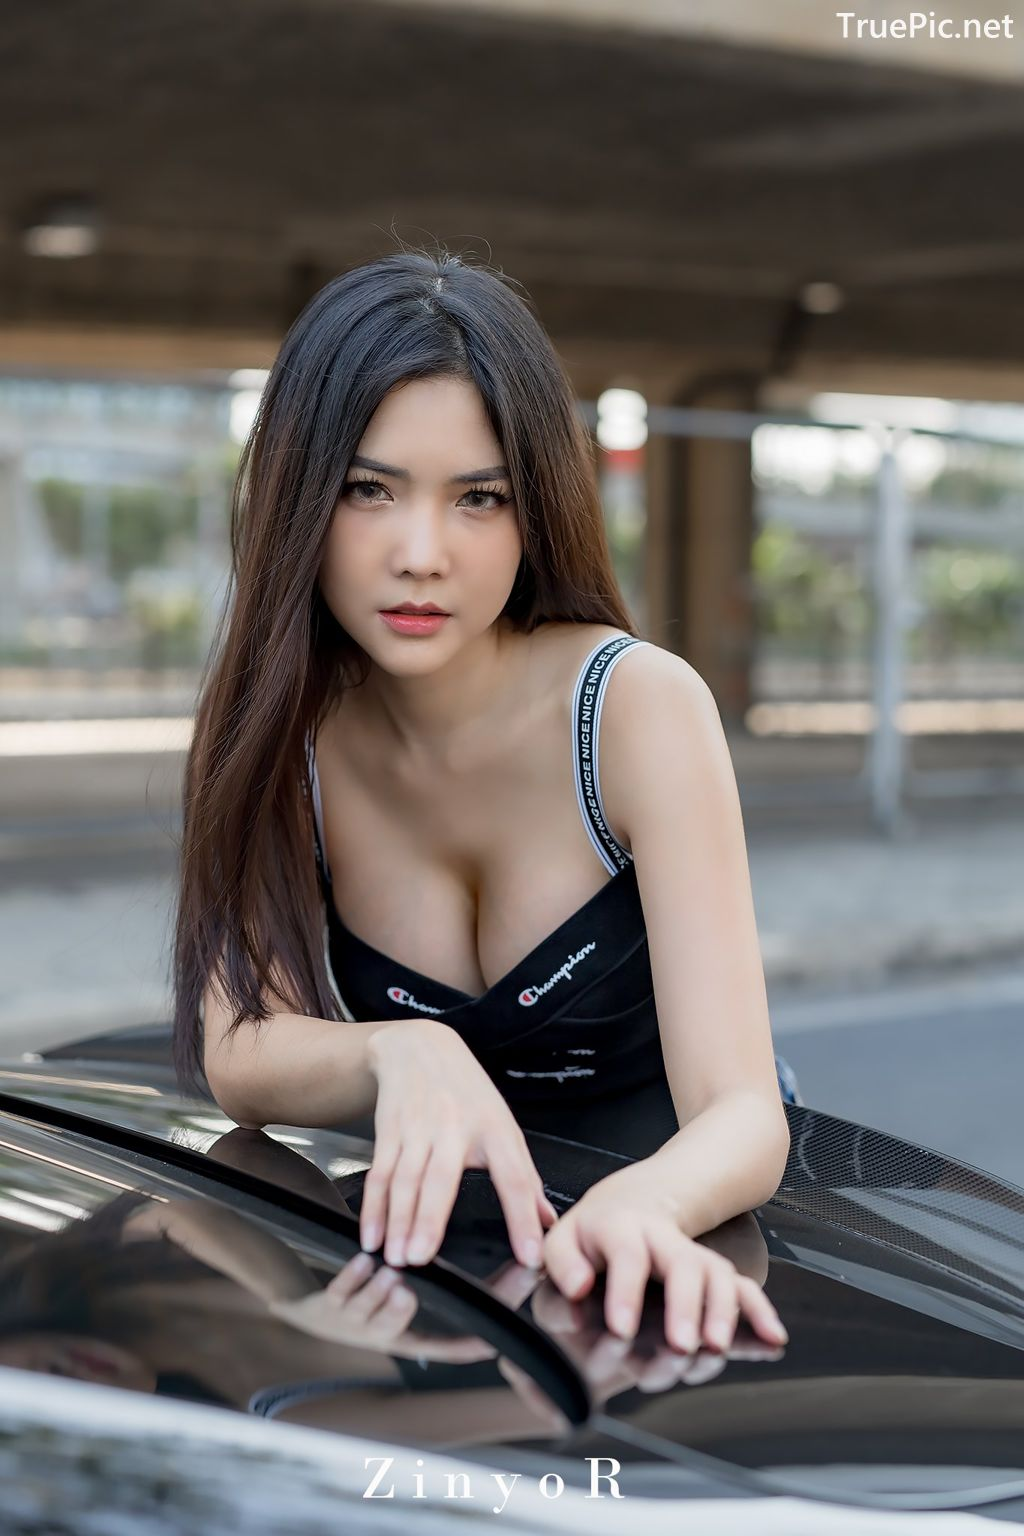 Image-Thailand-Model-Phitchamol-Srijantanet-Black-Crop-Top-and-Jean-TruePic.net- Picture-1